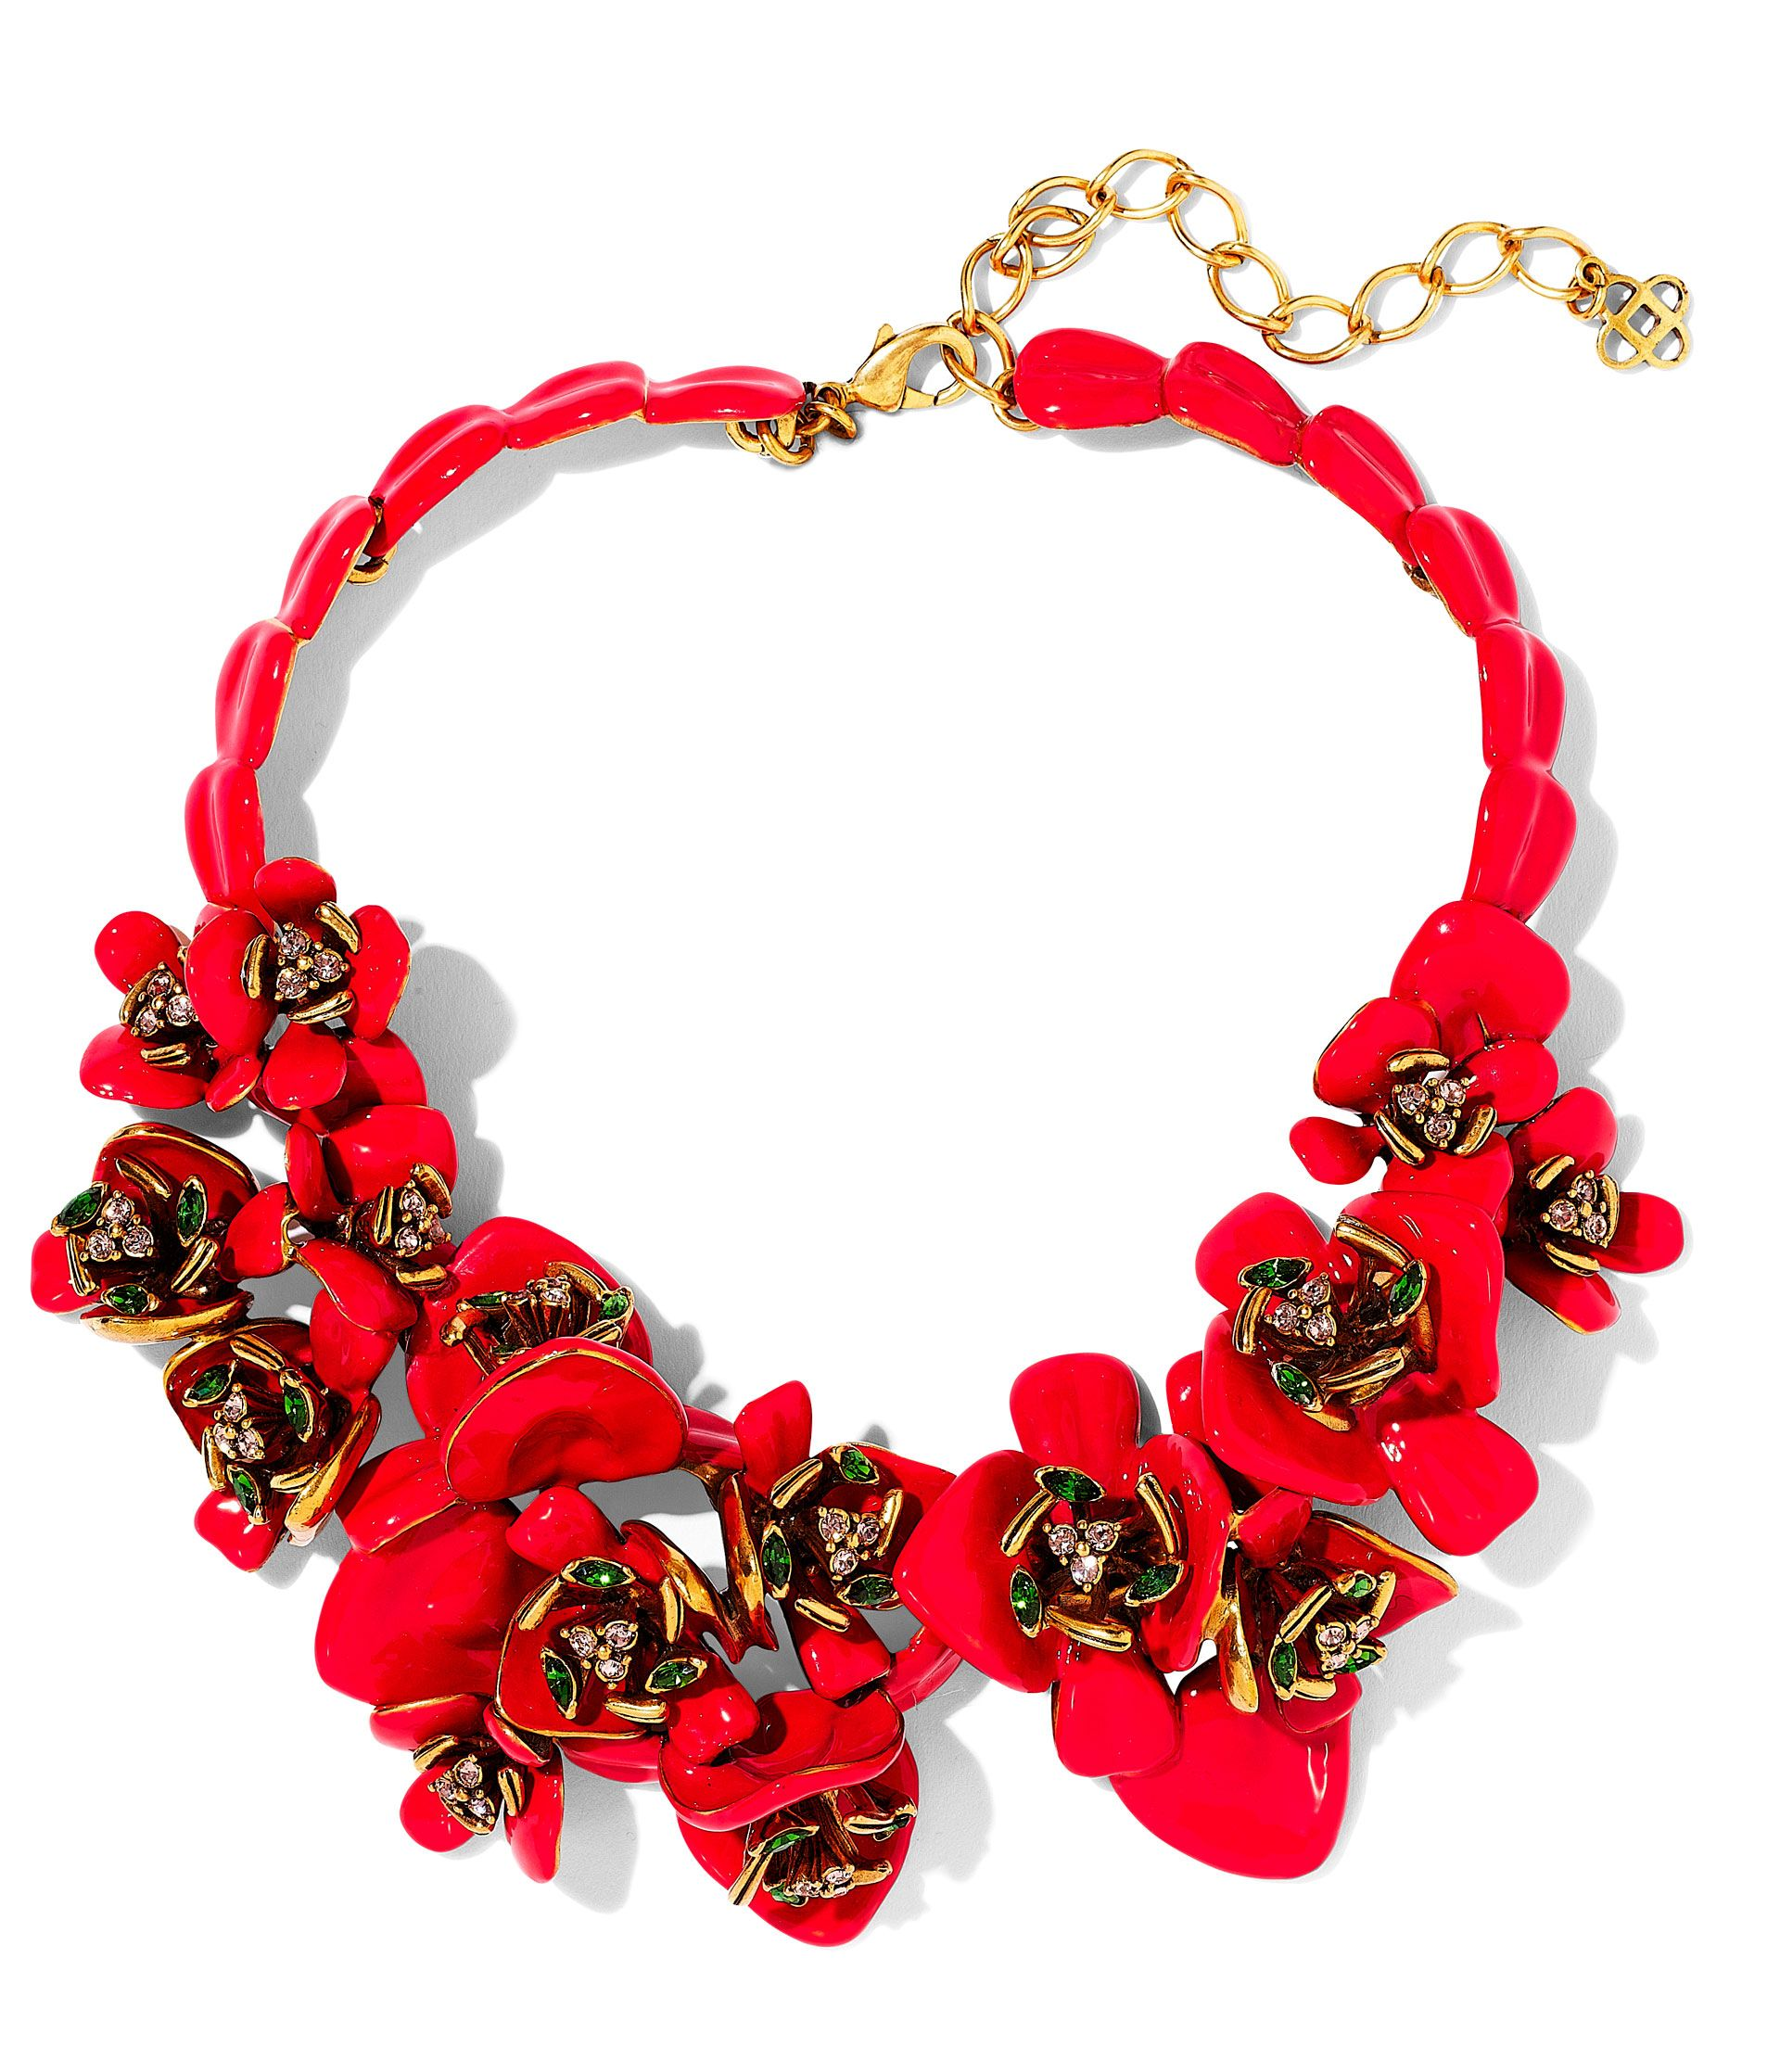 Https Culture G1958 Emmys 2013 Celebrity Cocoa Jewelry Rules Of Love Bracelet Emas 5482d7fc181b7 Mcx What Erin Loves Necklace S2